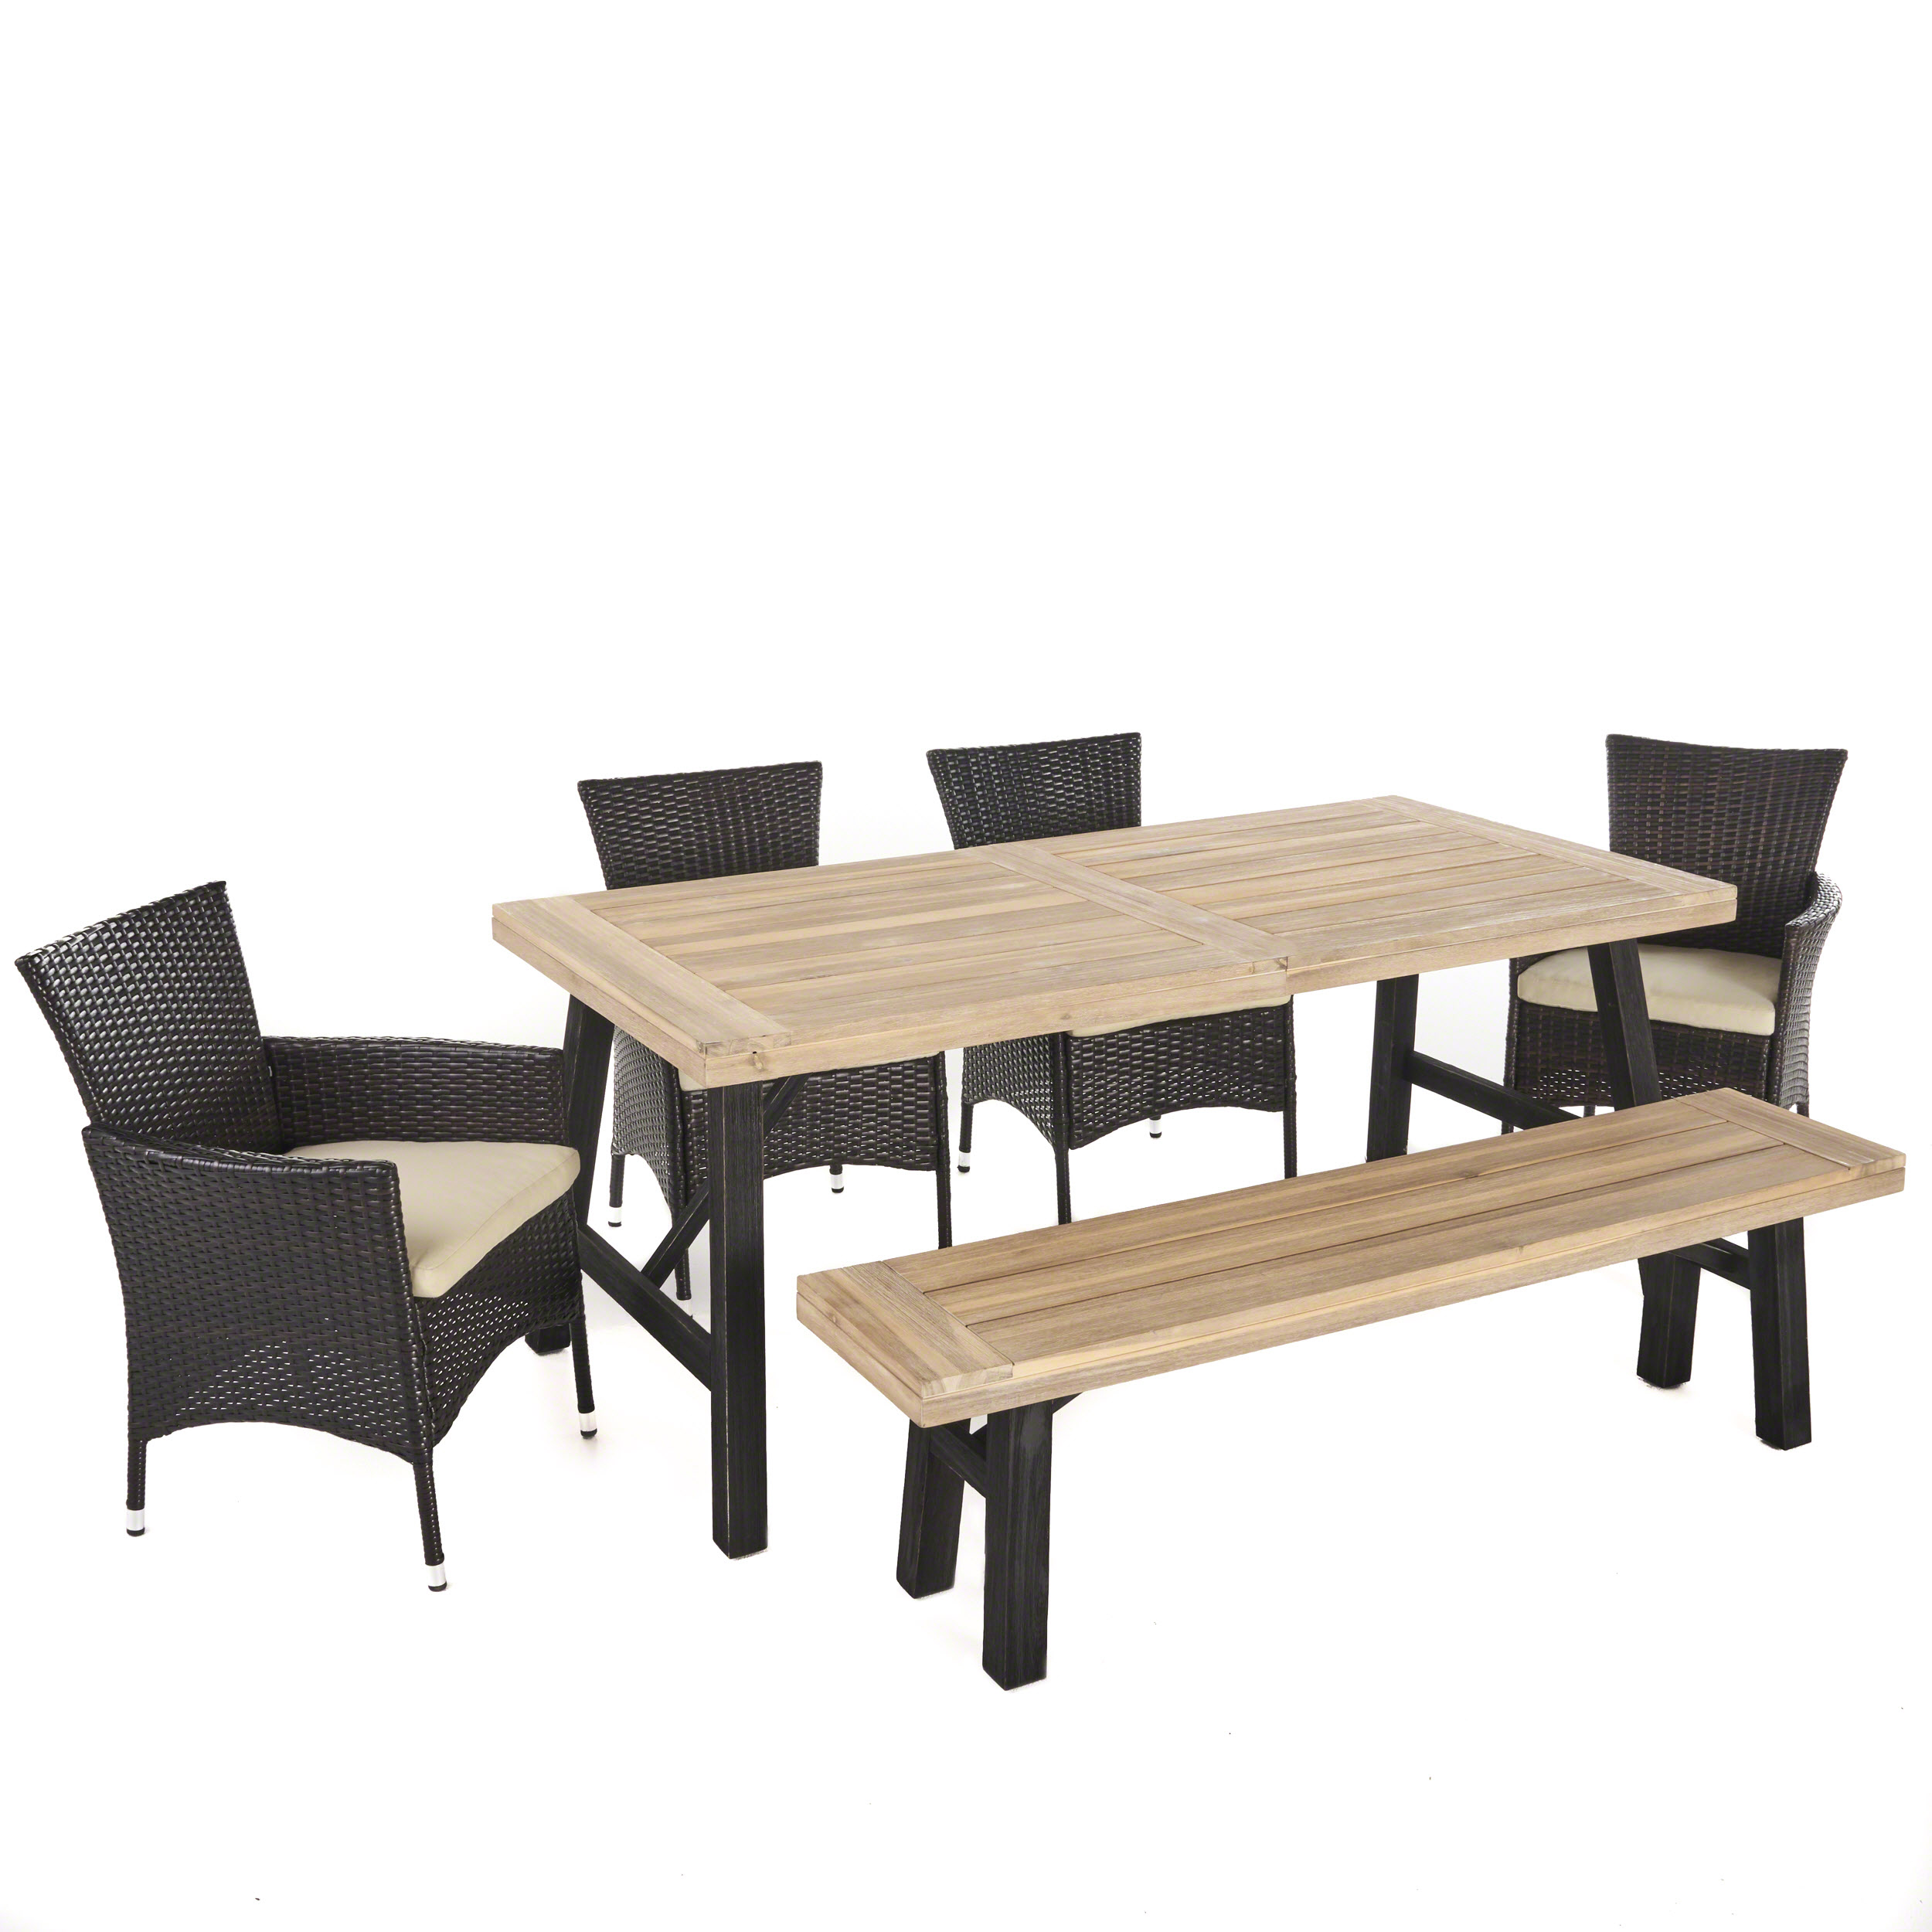 Jacks Outdoor 6 Piece Acacia Wood Dining Set with Multibrown Wicker Dining Chairs and Water Resistant Cushions, Grey